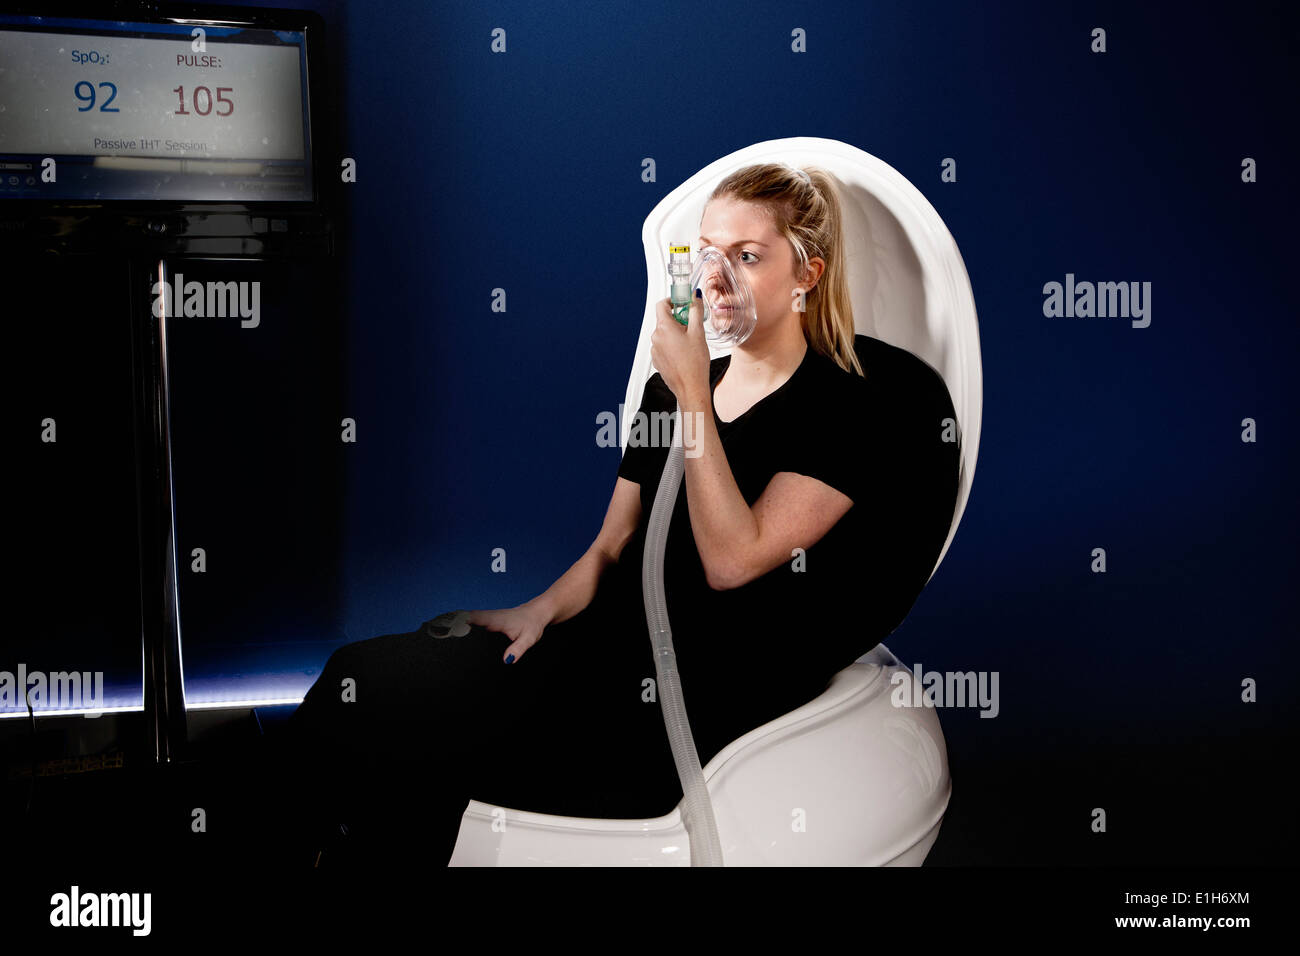 Young woman using face mask in gym altitude centre - Stock Image